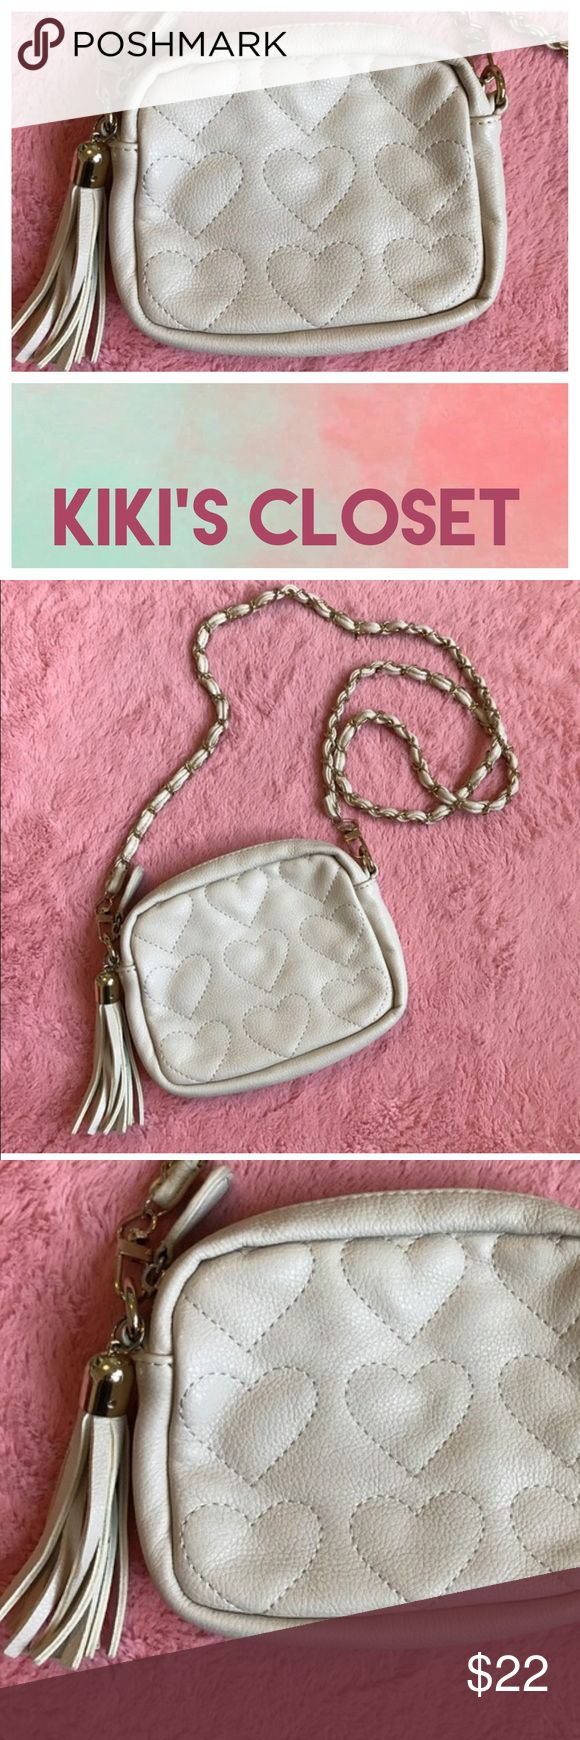 🚨PRICE DROP🚨F 21 HEARTS QUILT CROSS BODY BAG 💗Condition: EUC, No flaws Color:cream/beige 💗Smoke free home 💗No trades, No returns 💗No modeling  💗Shipping next day 💗I LOVE OFFERS, offer me! 💗BUNDLE and save more 💗All transactions video recorded to ensure quality.  💗Ask all questions before buying Forever 21 Bags Crossbody Bags